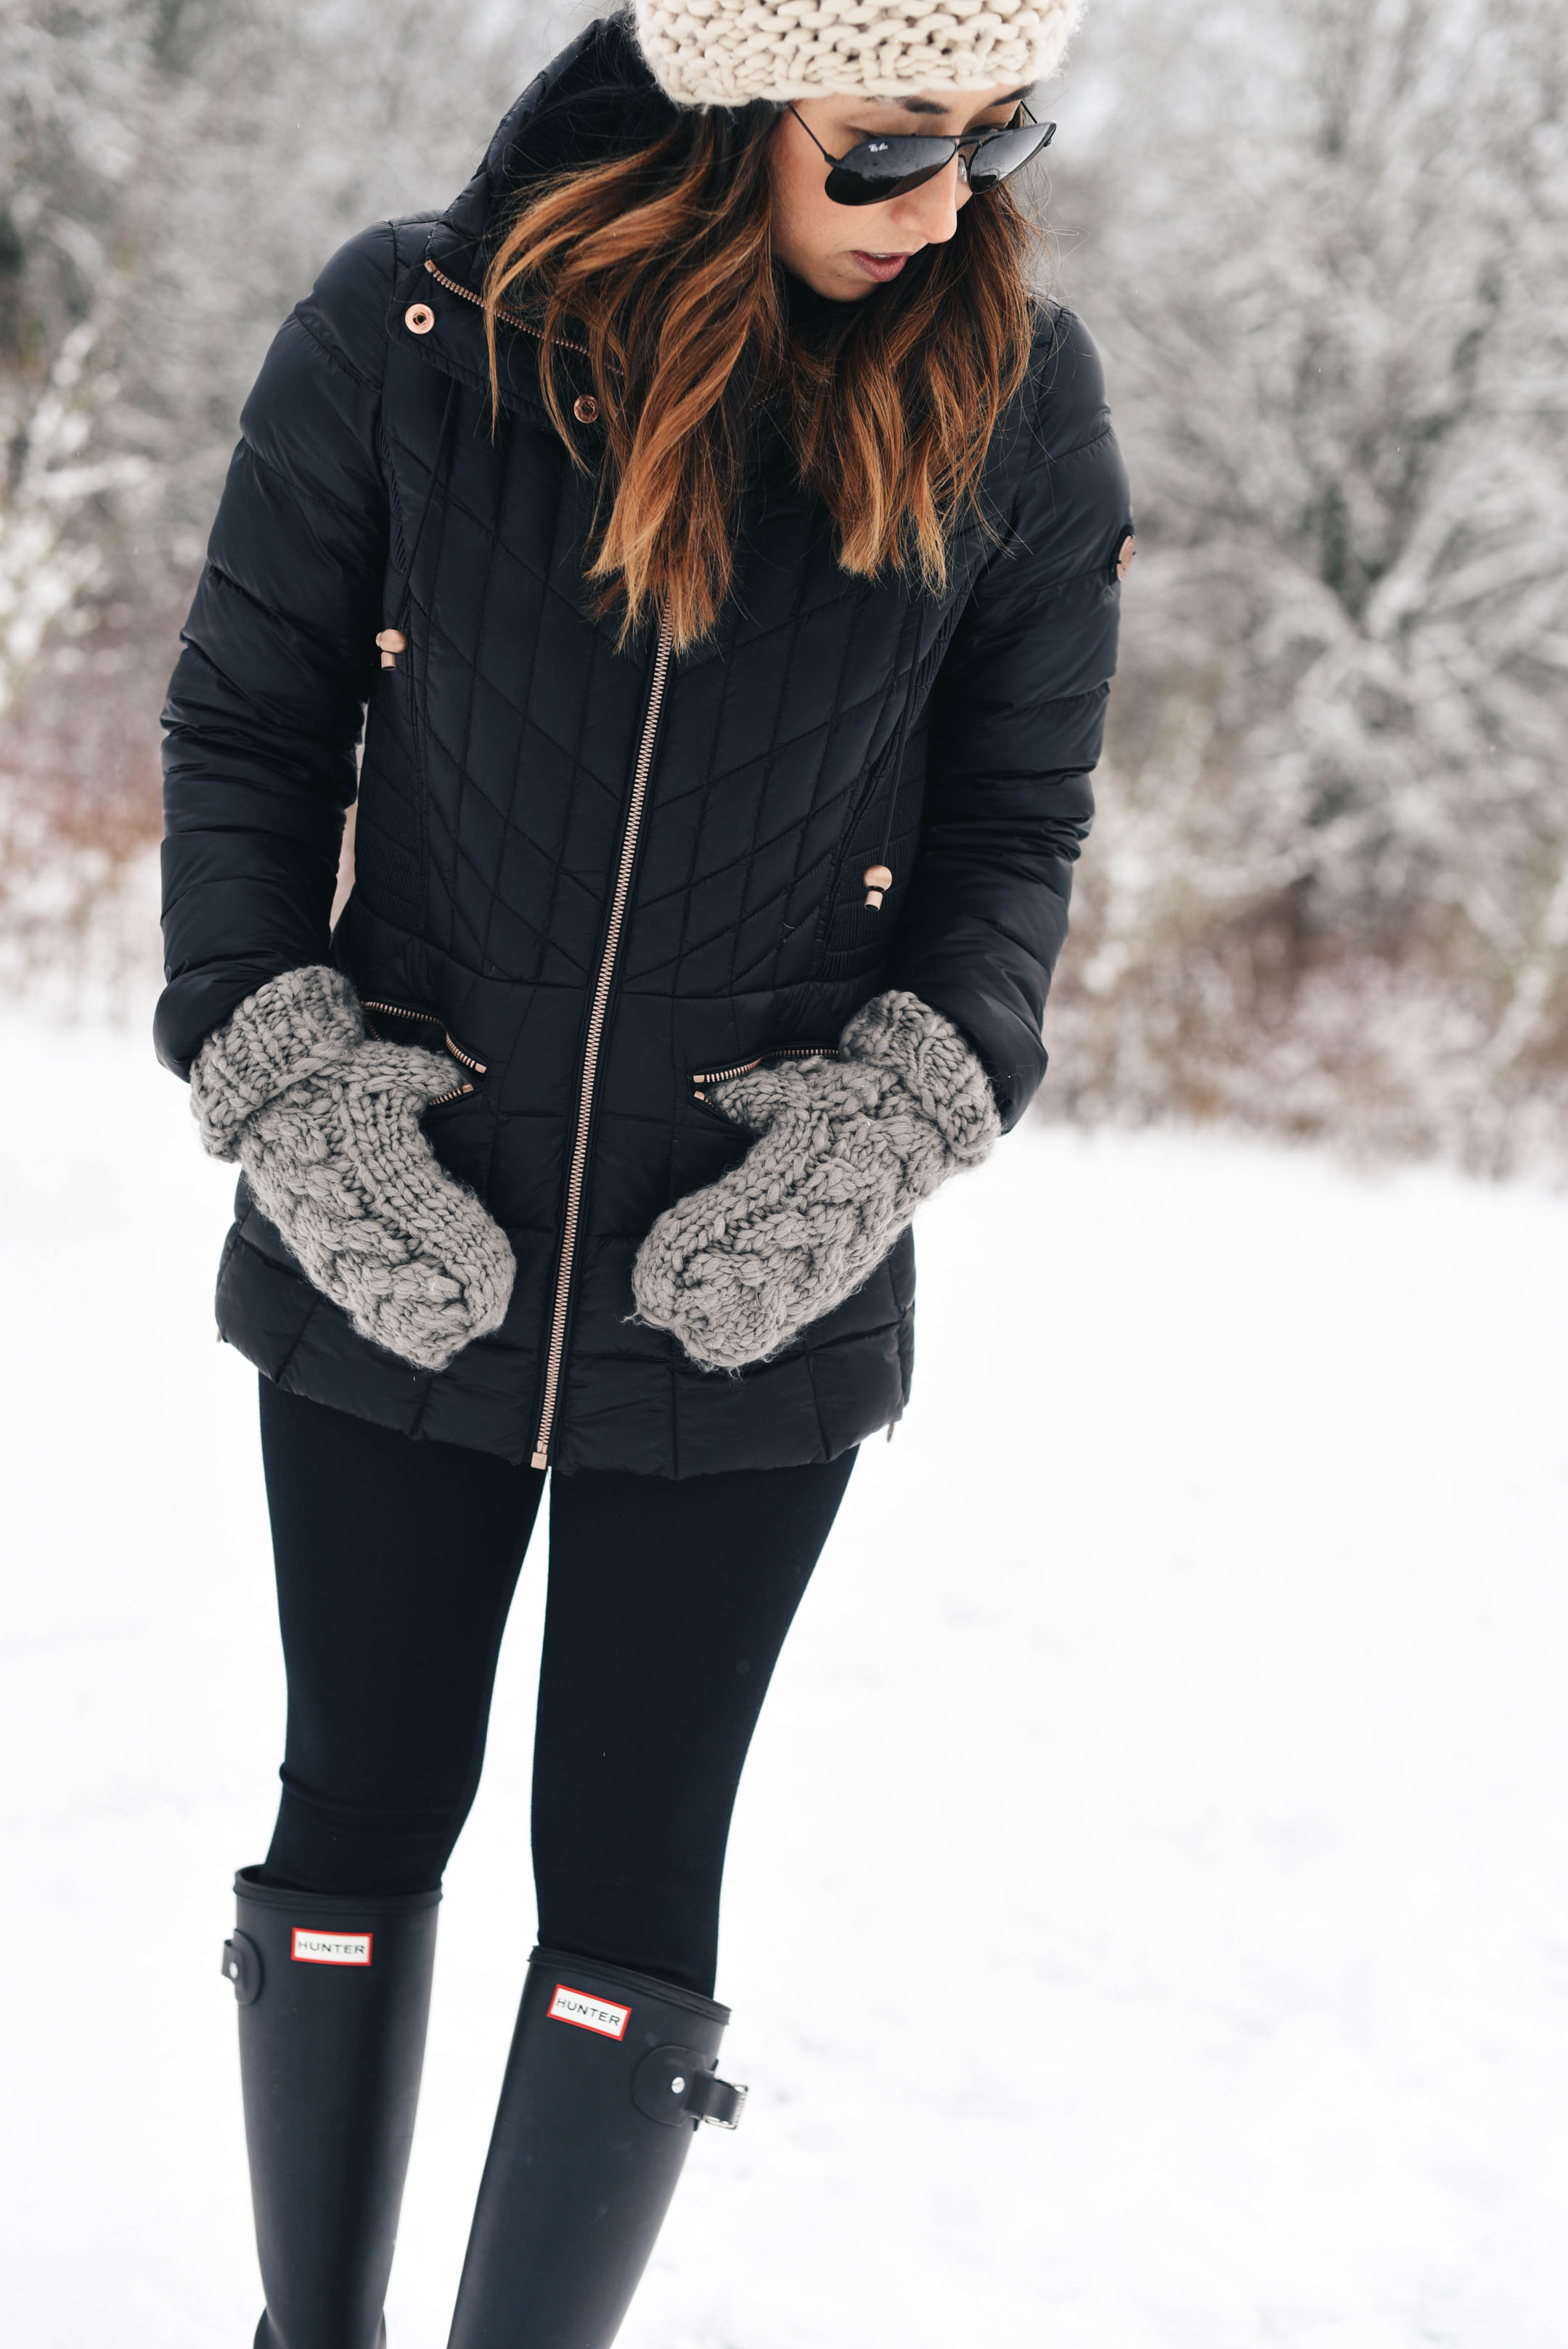 Abercrombie & Fitch mittens